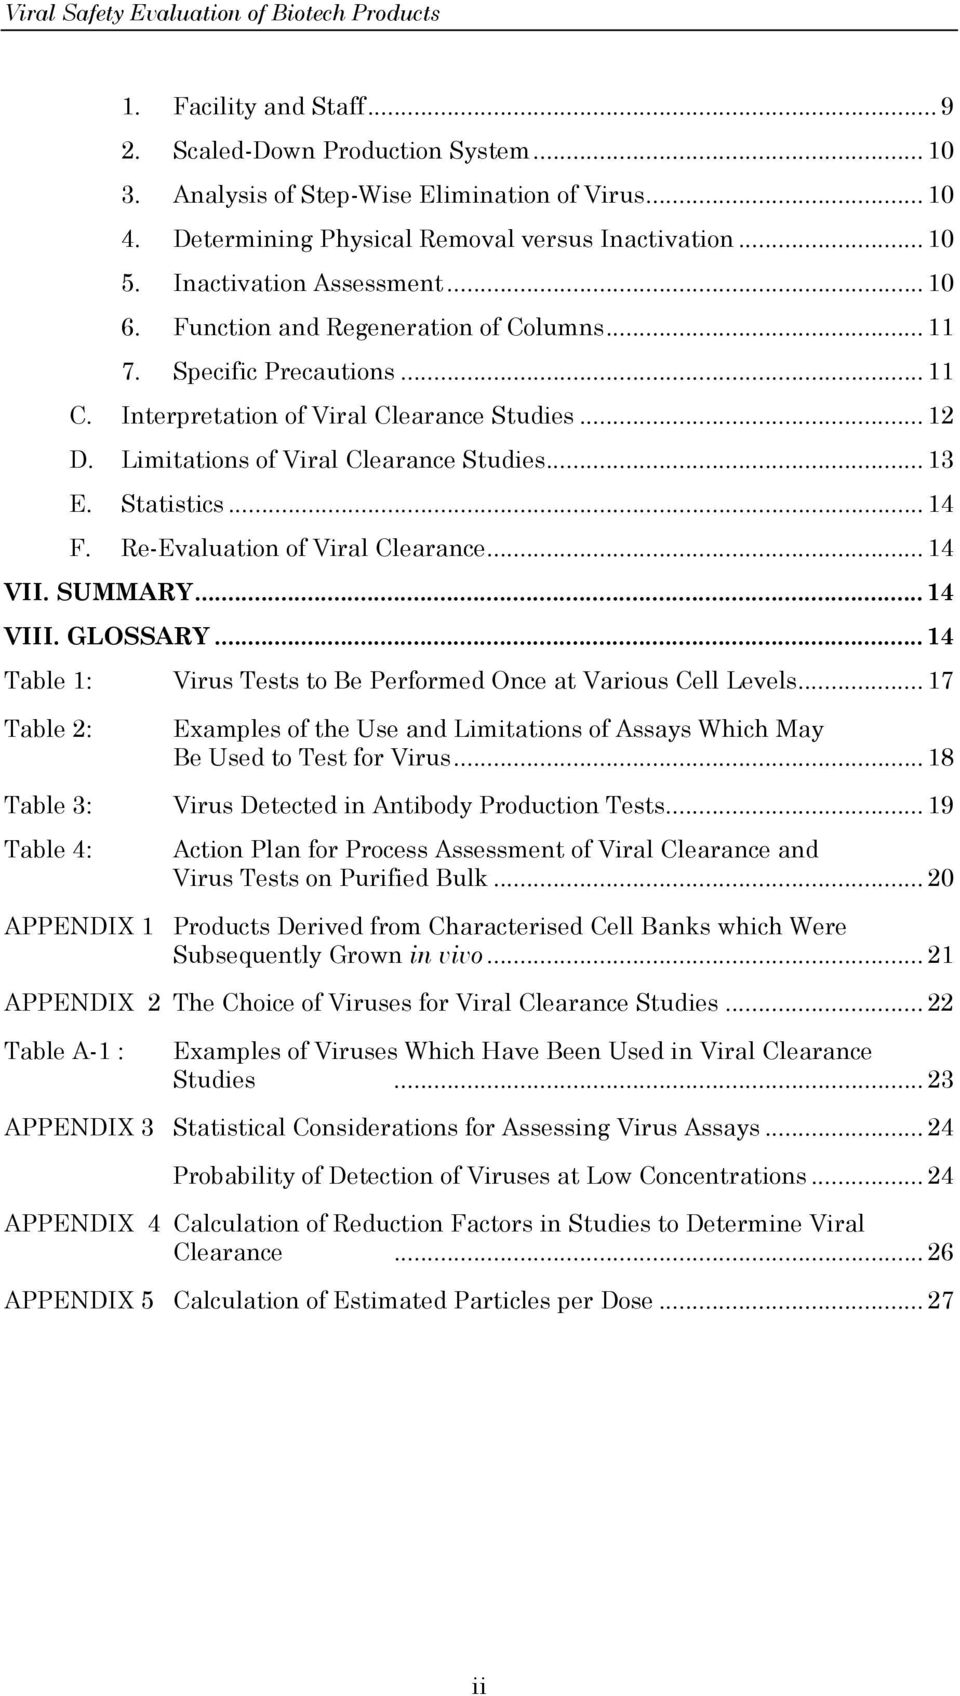 .. 13 E. Statistics... 14 F. Re-Evaluation of Viral Clearance... 14 VII. SUMMARY... 14 VIII. GLOSSARY... 14 Table 1: Virus Tests to Be Performed Once at Various Cell Levels.